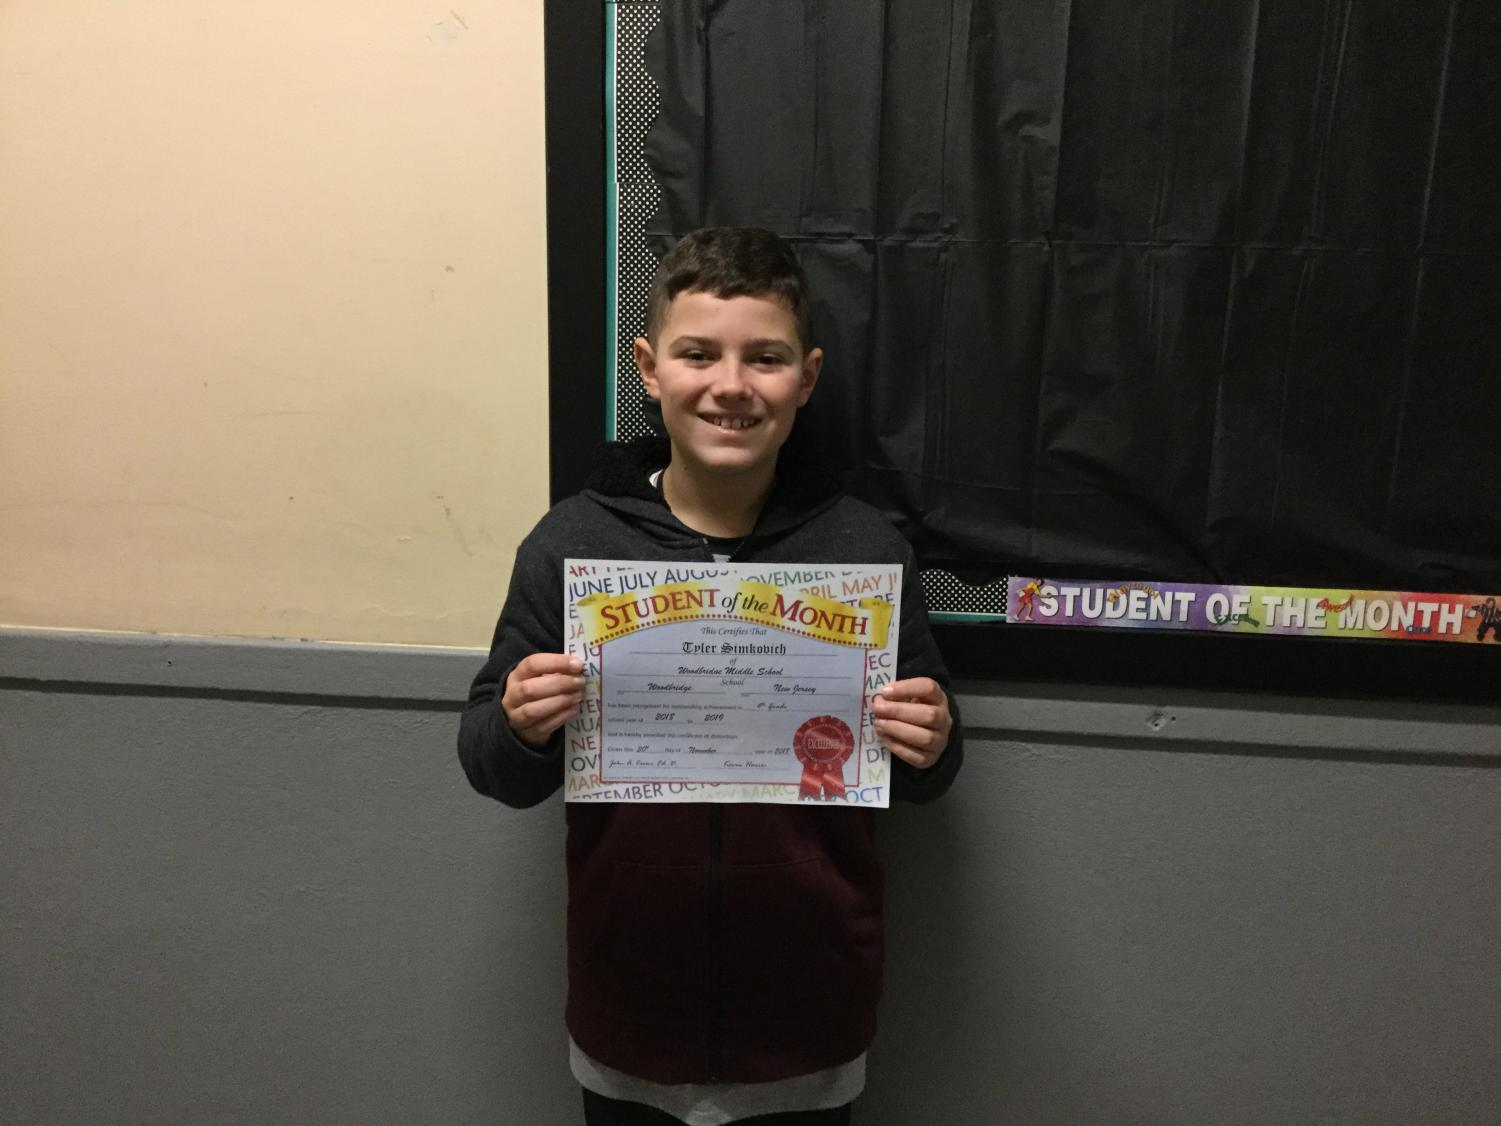 Tyler Simkovich with 6th grade Student of the Month Award